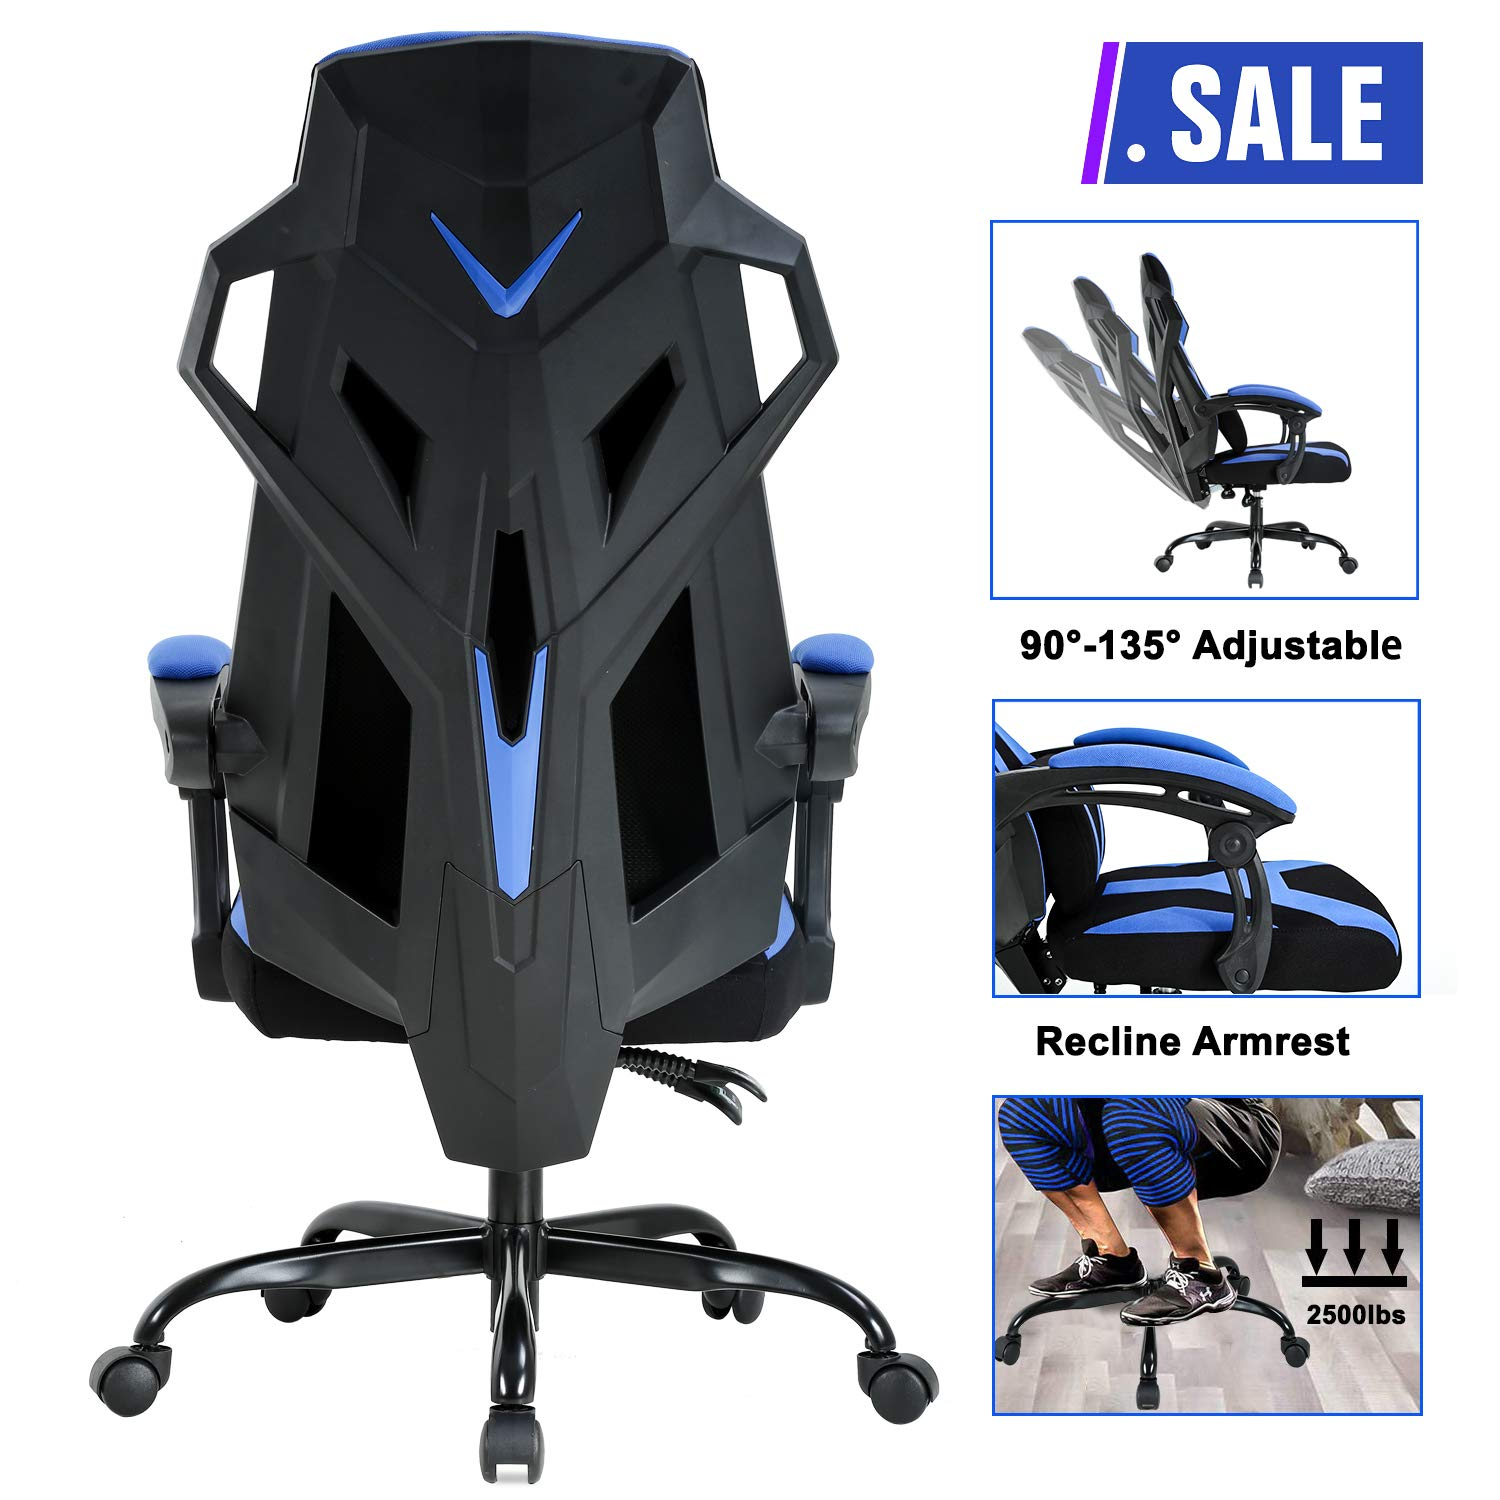 PC Gaming Chair Ergonomic Office Chair Desk Chair Executive Swivel Rolling Adjustable Computer Chair with Lumbar Support Headrest Arms High Back Racing Chair for Back Pain, Blue by BestOffice